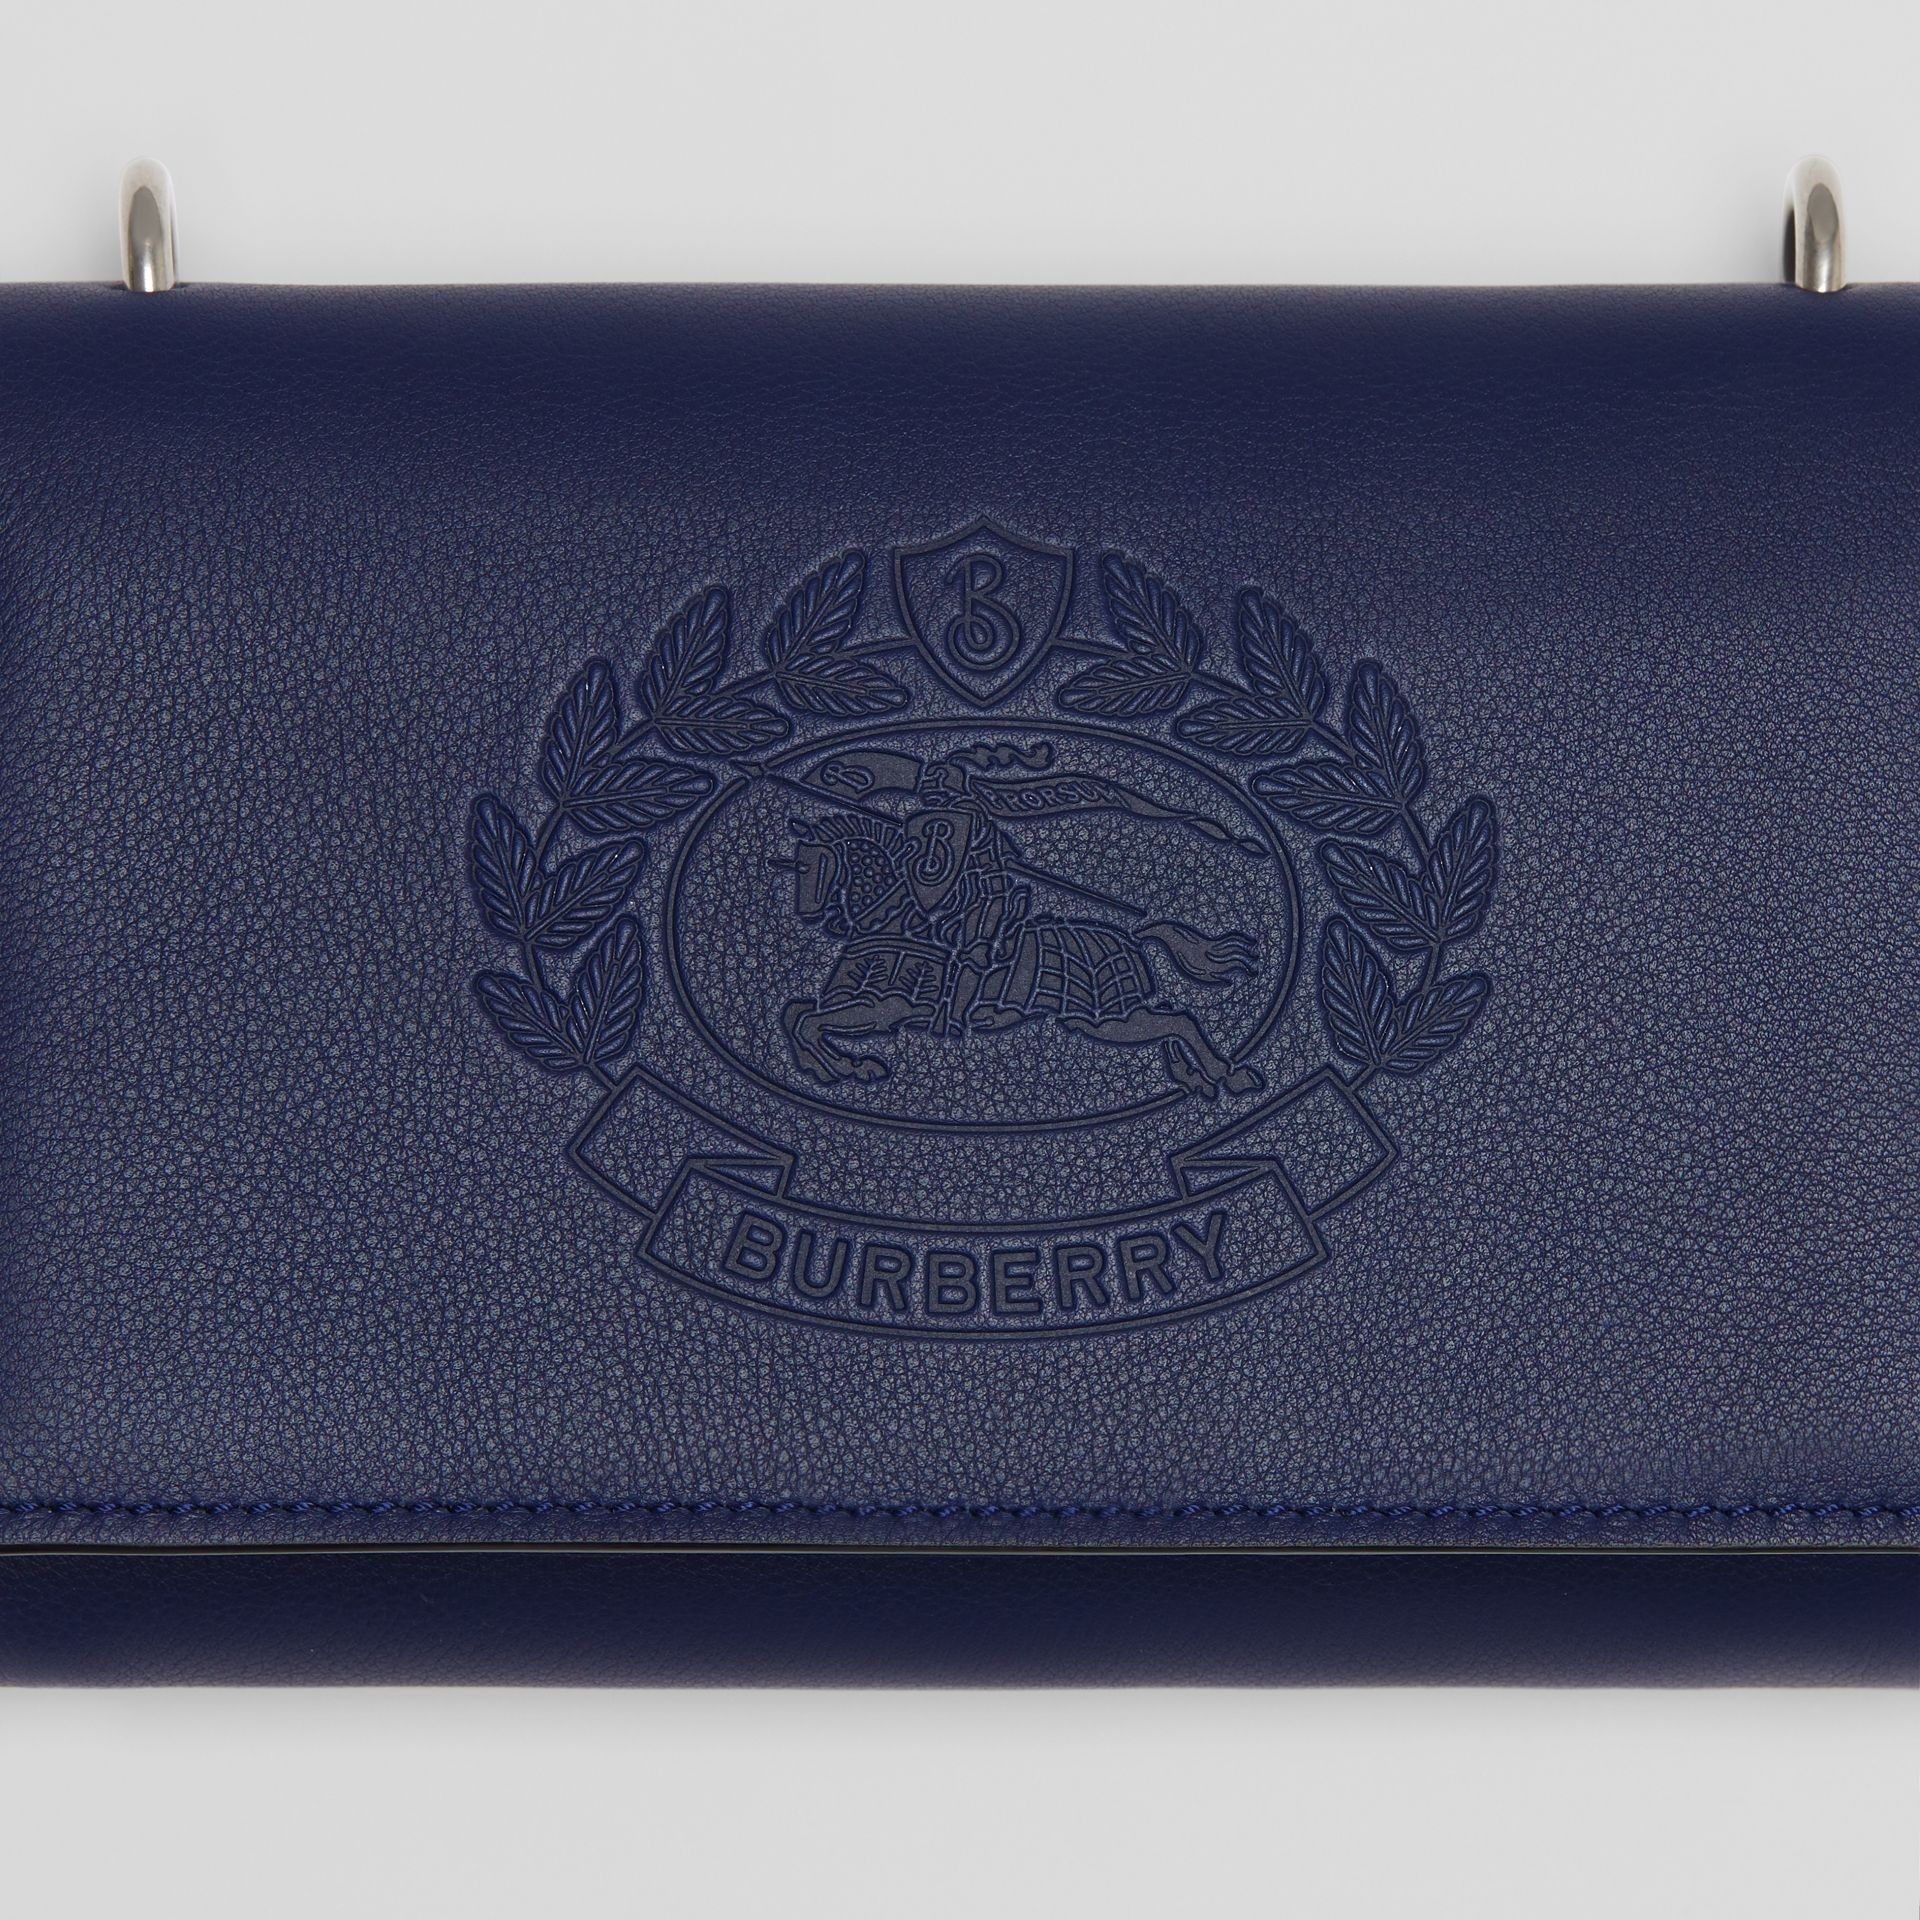 Embossed Crest Leather Wallet with Detachable Strap in Regency Blue - Women | Burberry United Kingdom - gallery image 1